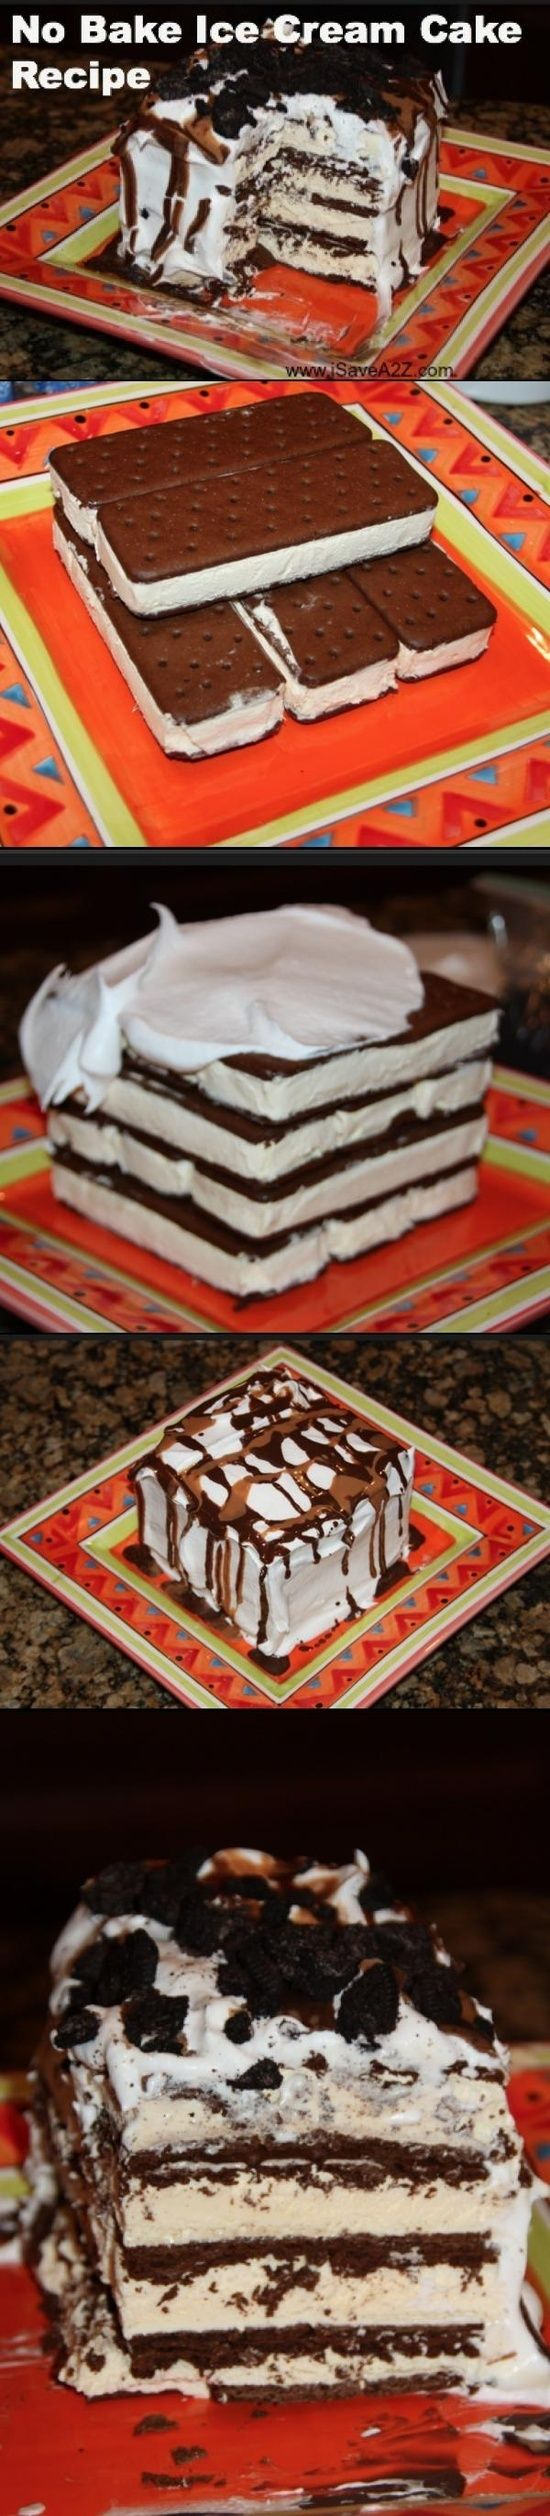 NO BAKING REQD!!  Ice Cream Sandwich cake